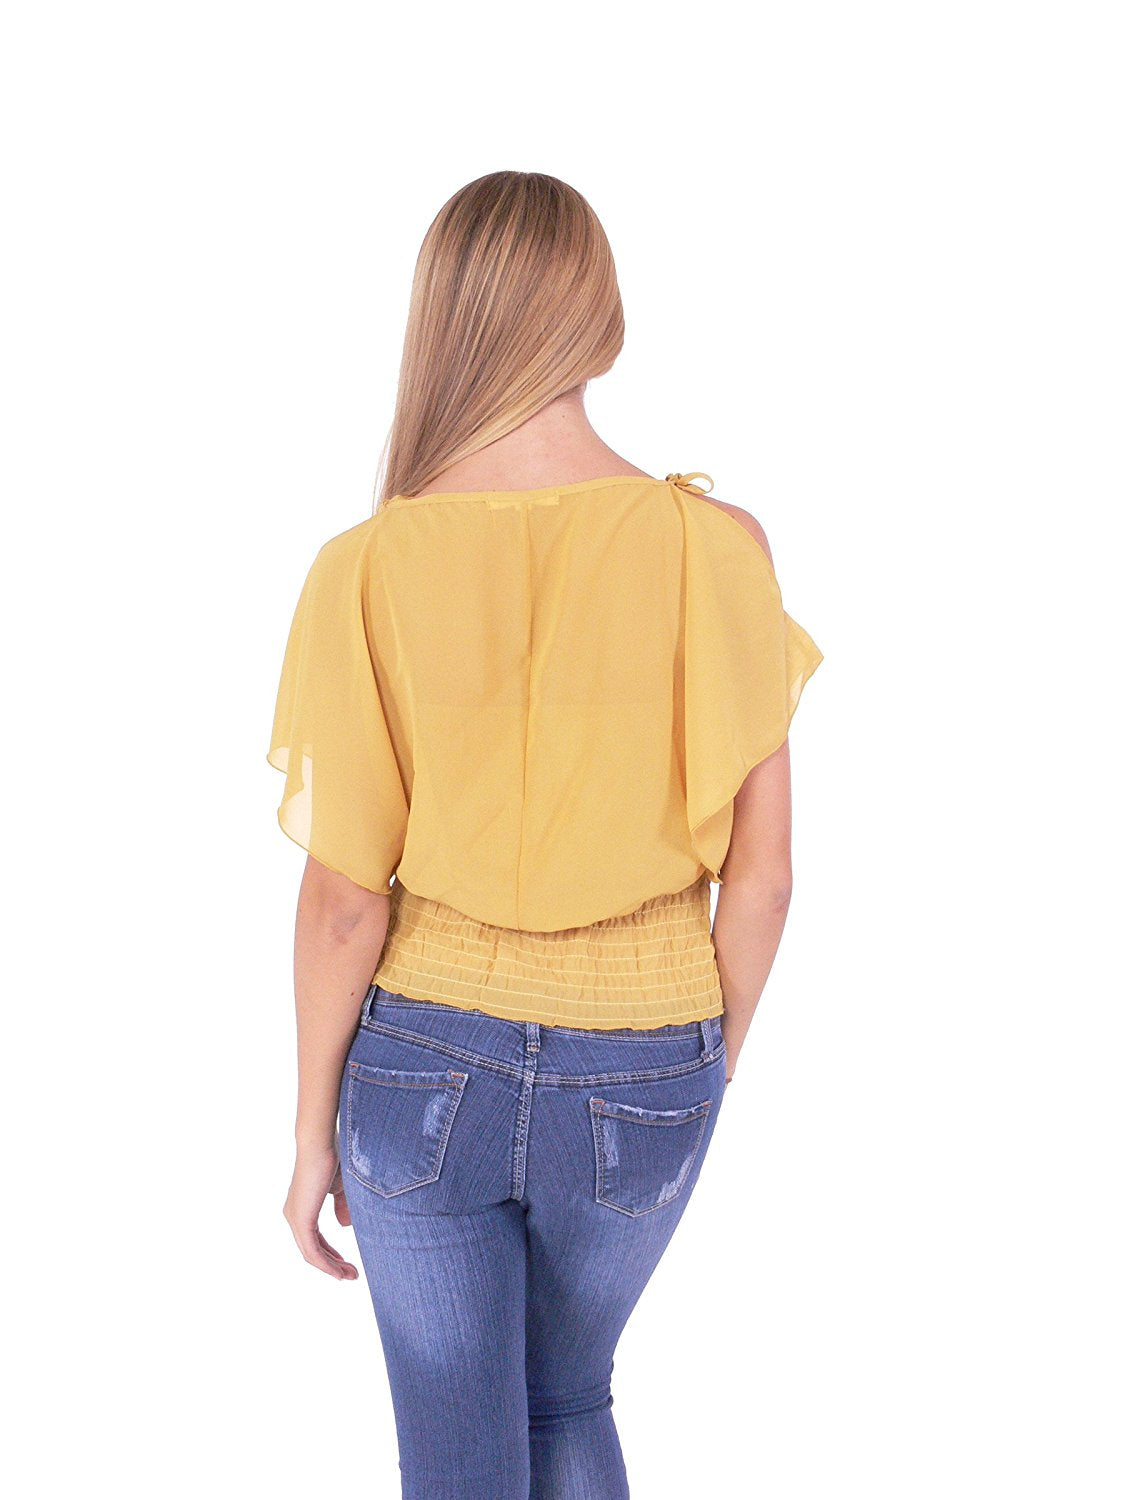 Hollywood Star Fashion Women's Lining Top Elastic Bottom Tied Shoulders Blouse